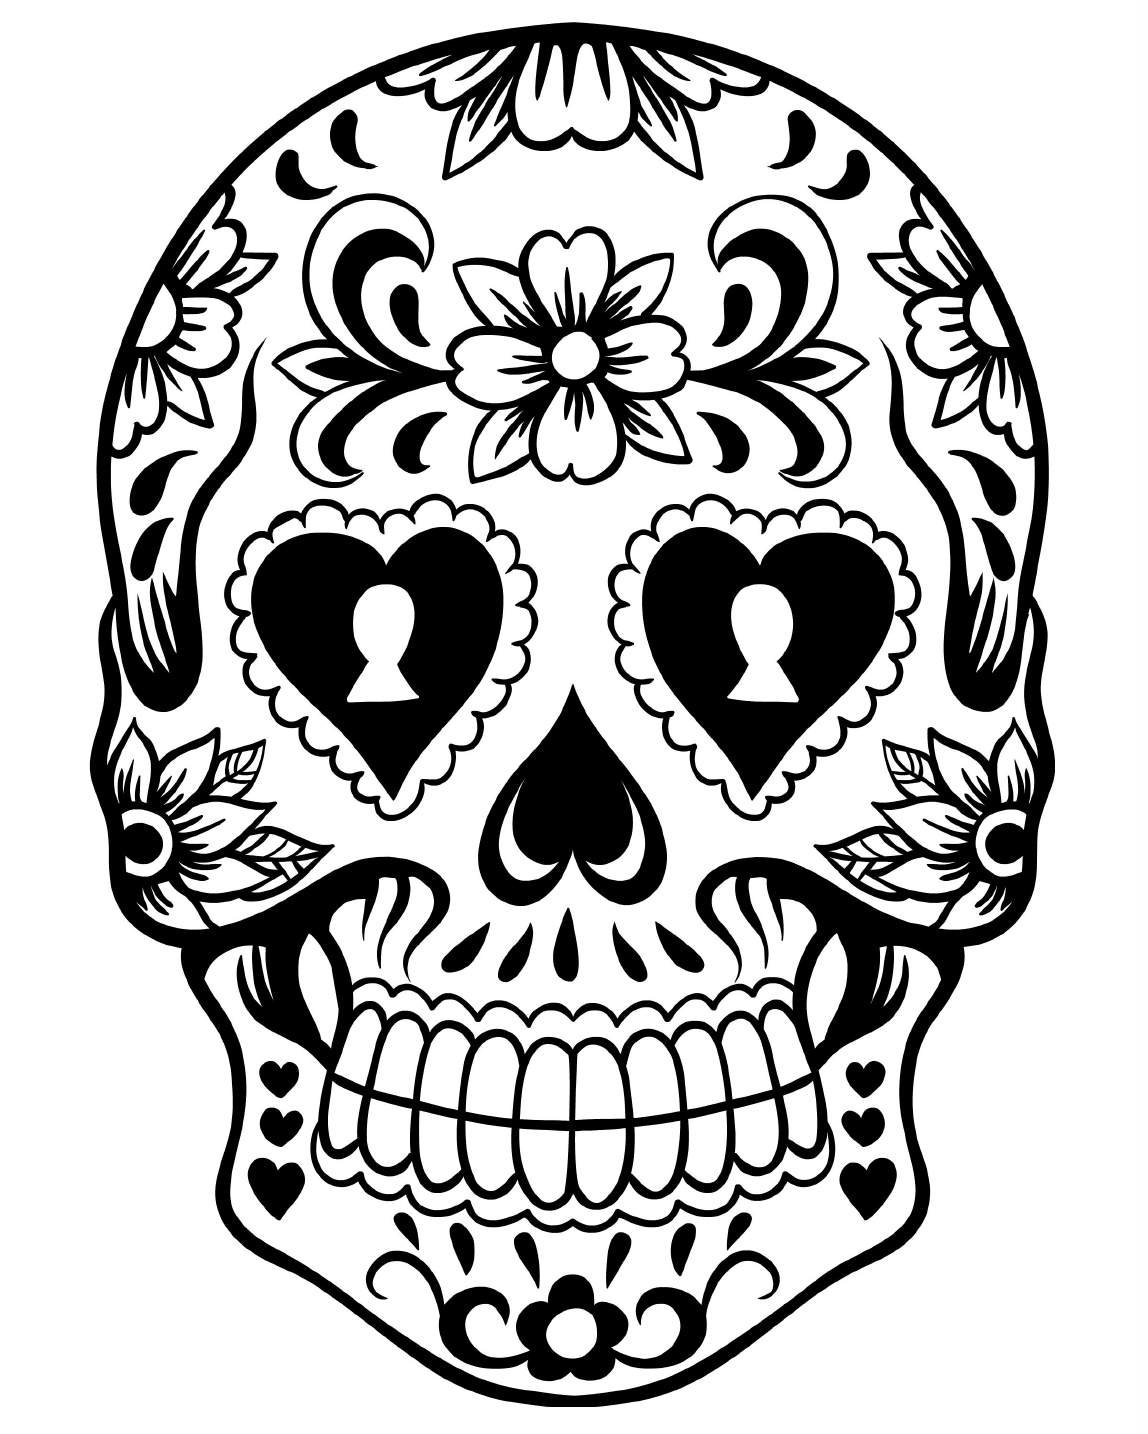 skull art day of the dead coloring - Day Of The Dead Coloring Pages